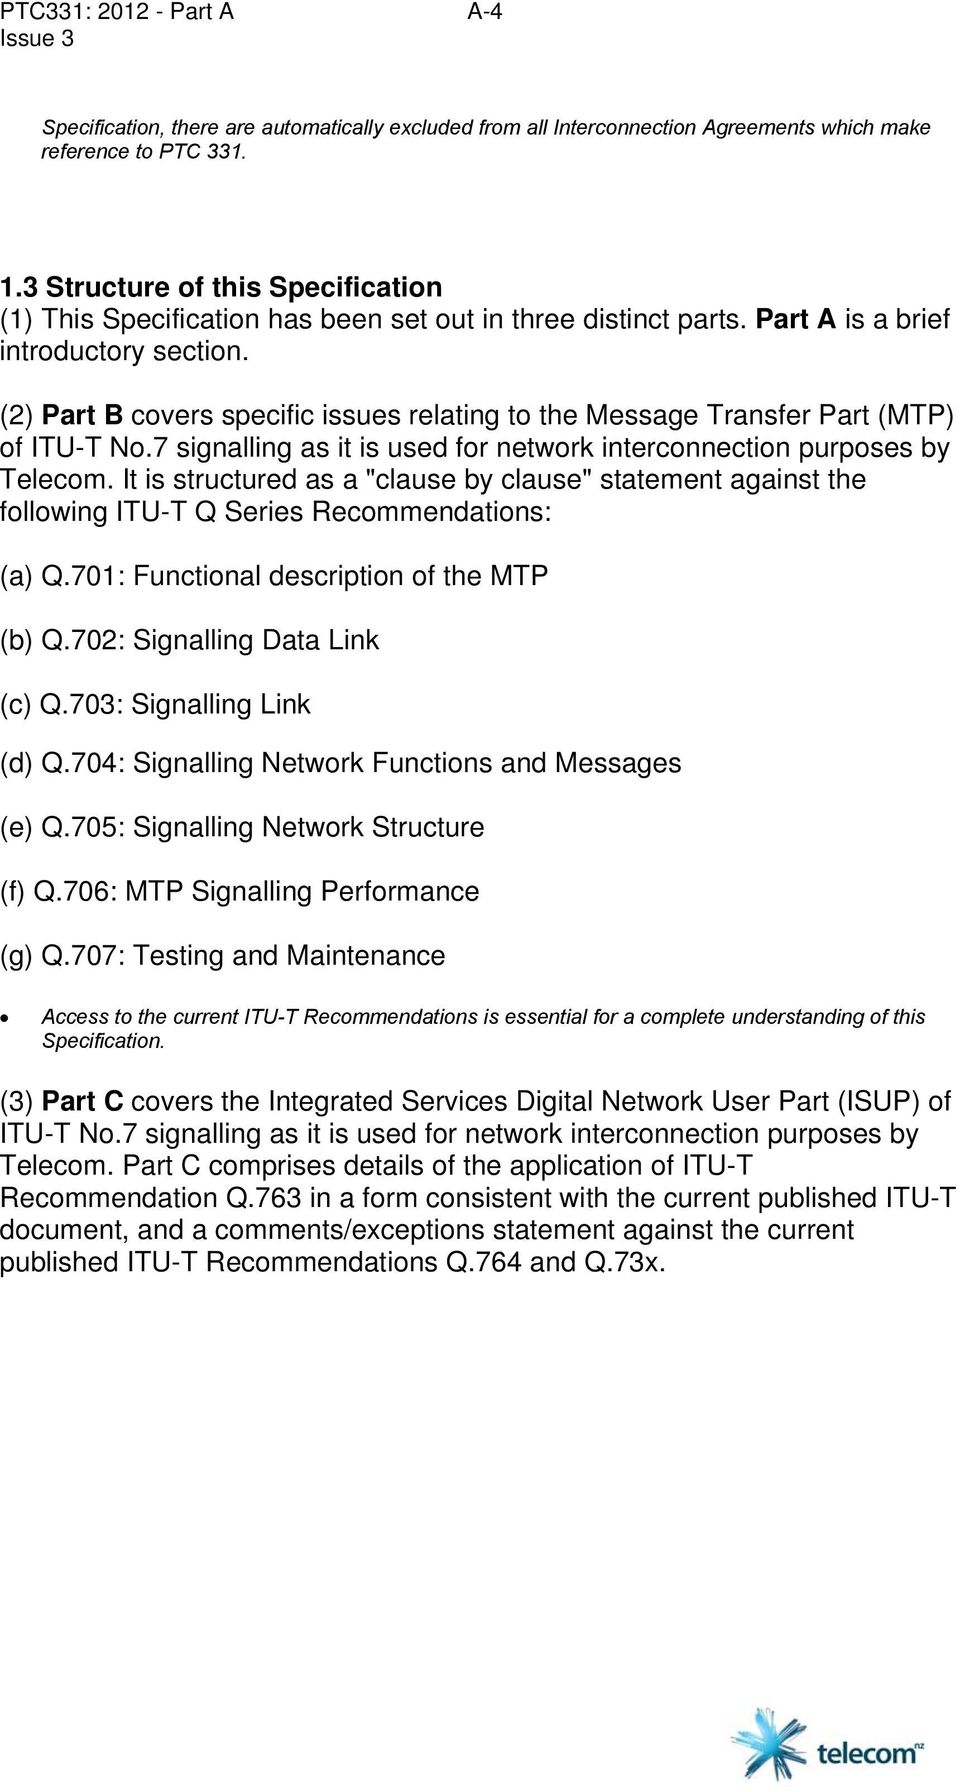 (2) Part B covers specific issues relating to the Message Transfer Part (MTP) of ITU-T No.7 signalling as it is used for network interconnection purposes by Telecom.